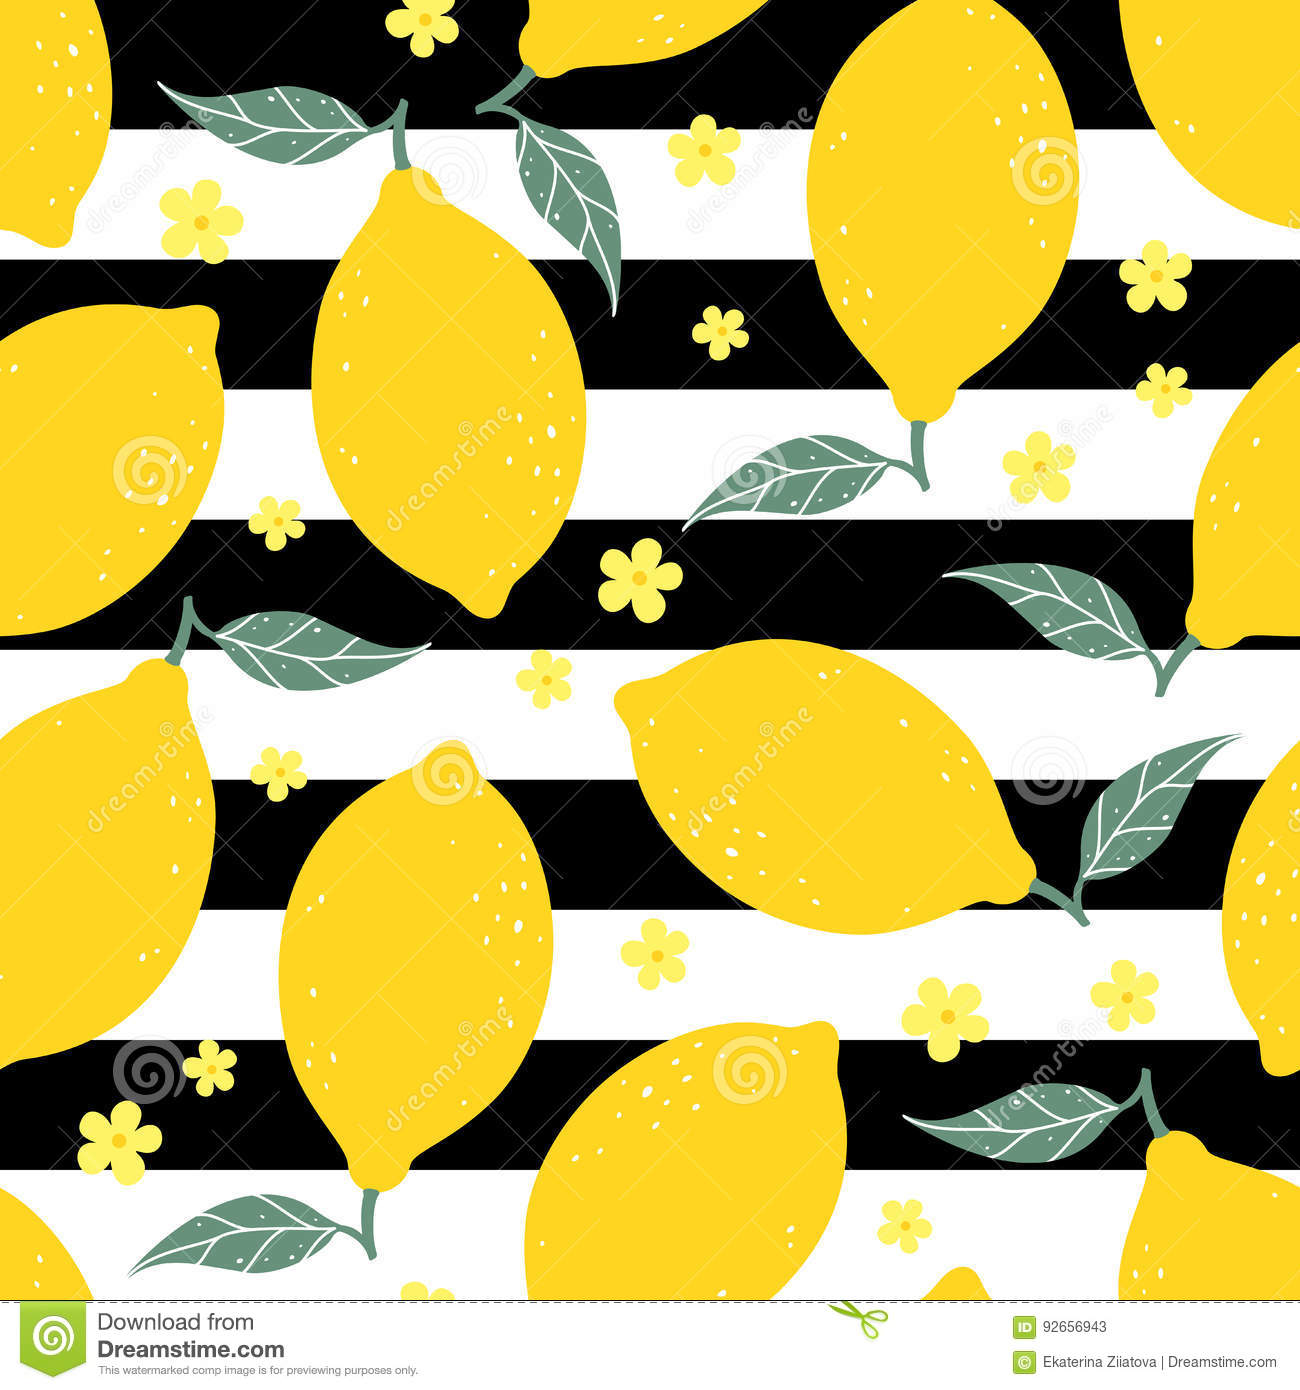 Tropical Home Decor Fabric Yellow Lemon With Leaves Vector Seamless Pattern Vector